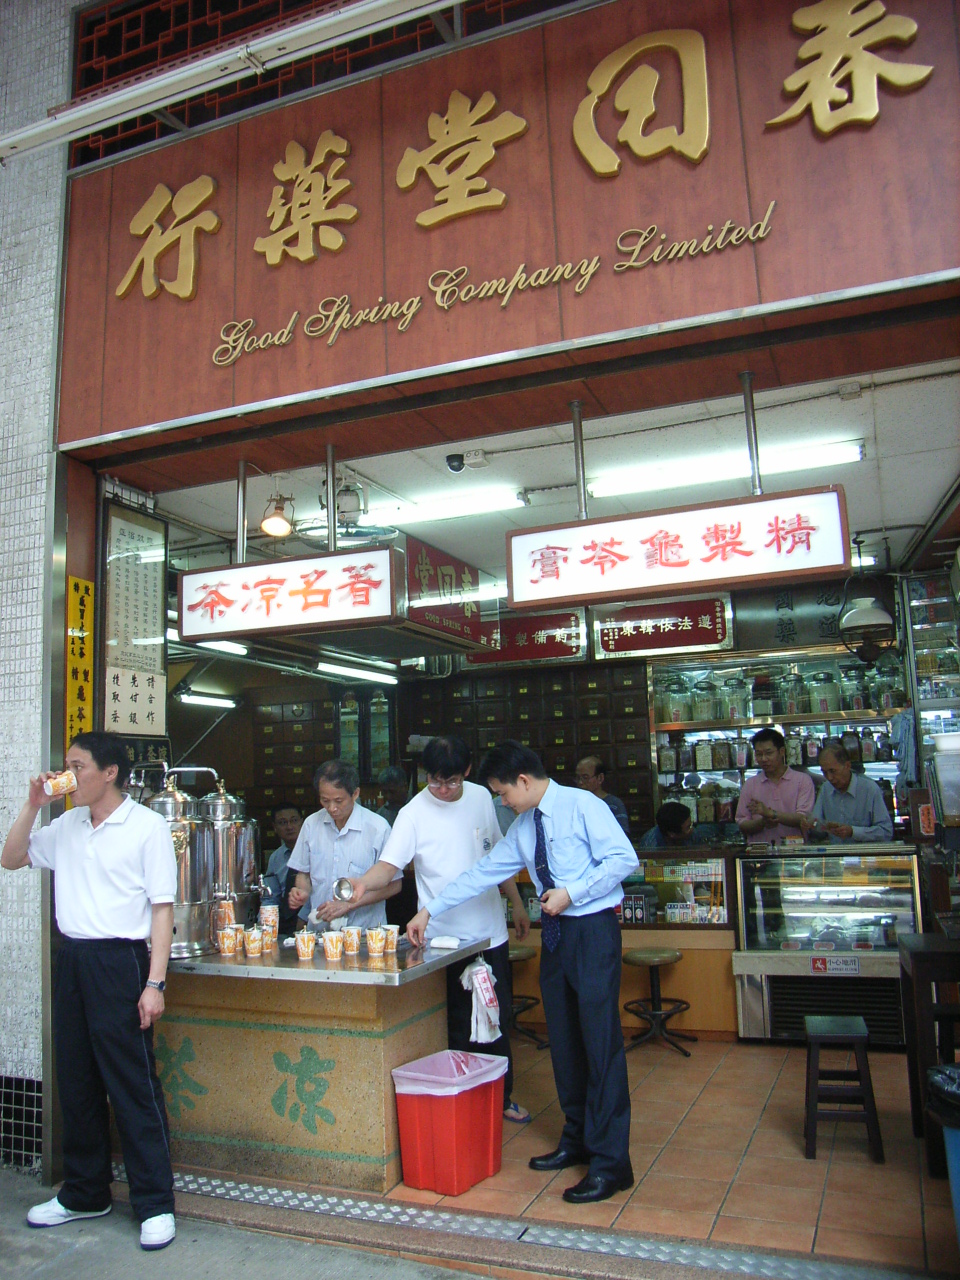 Chinese herb tea wikipedia for Shopping in cina